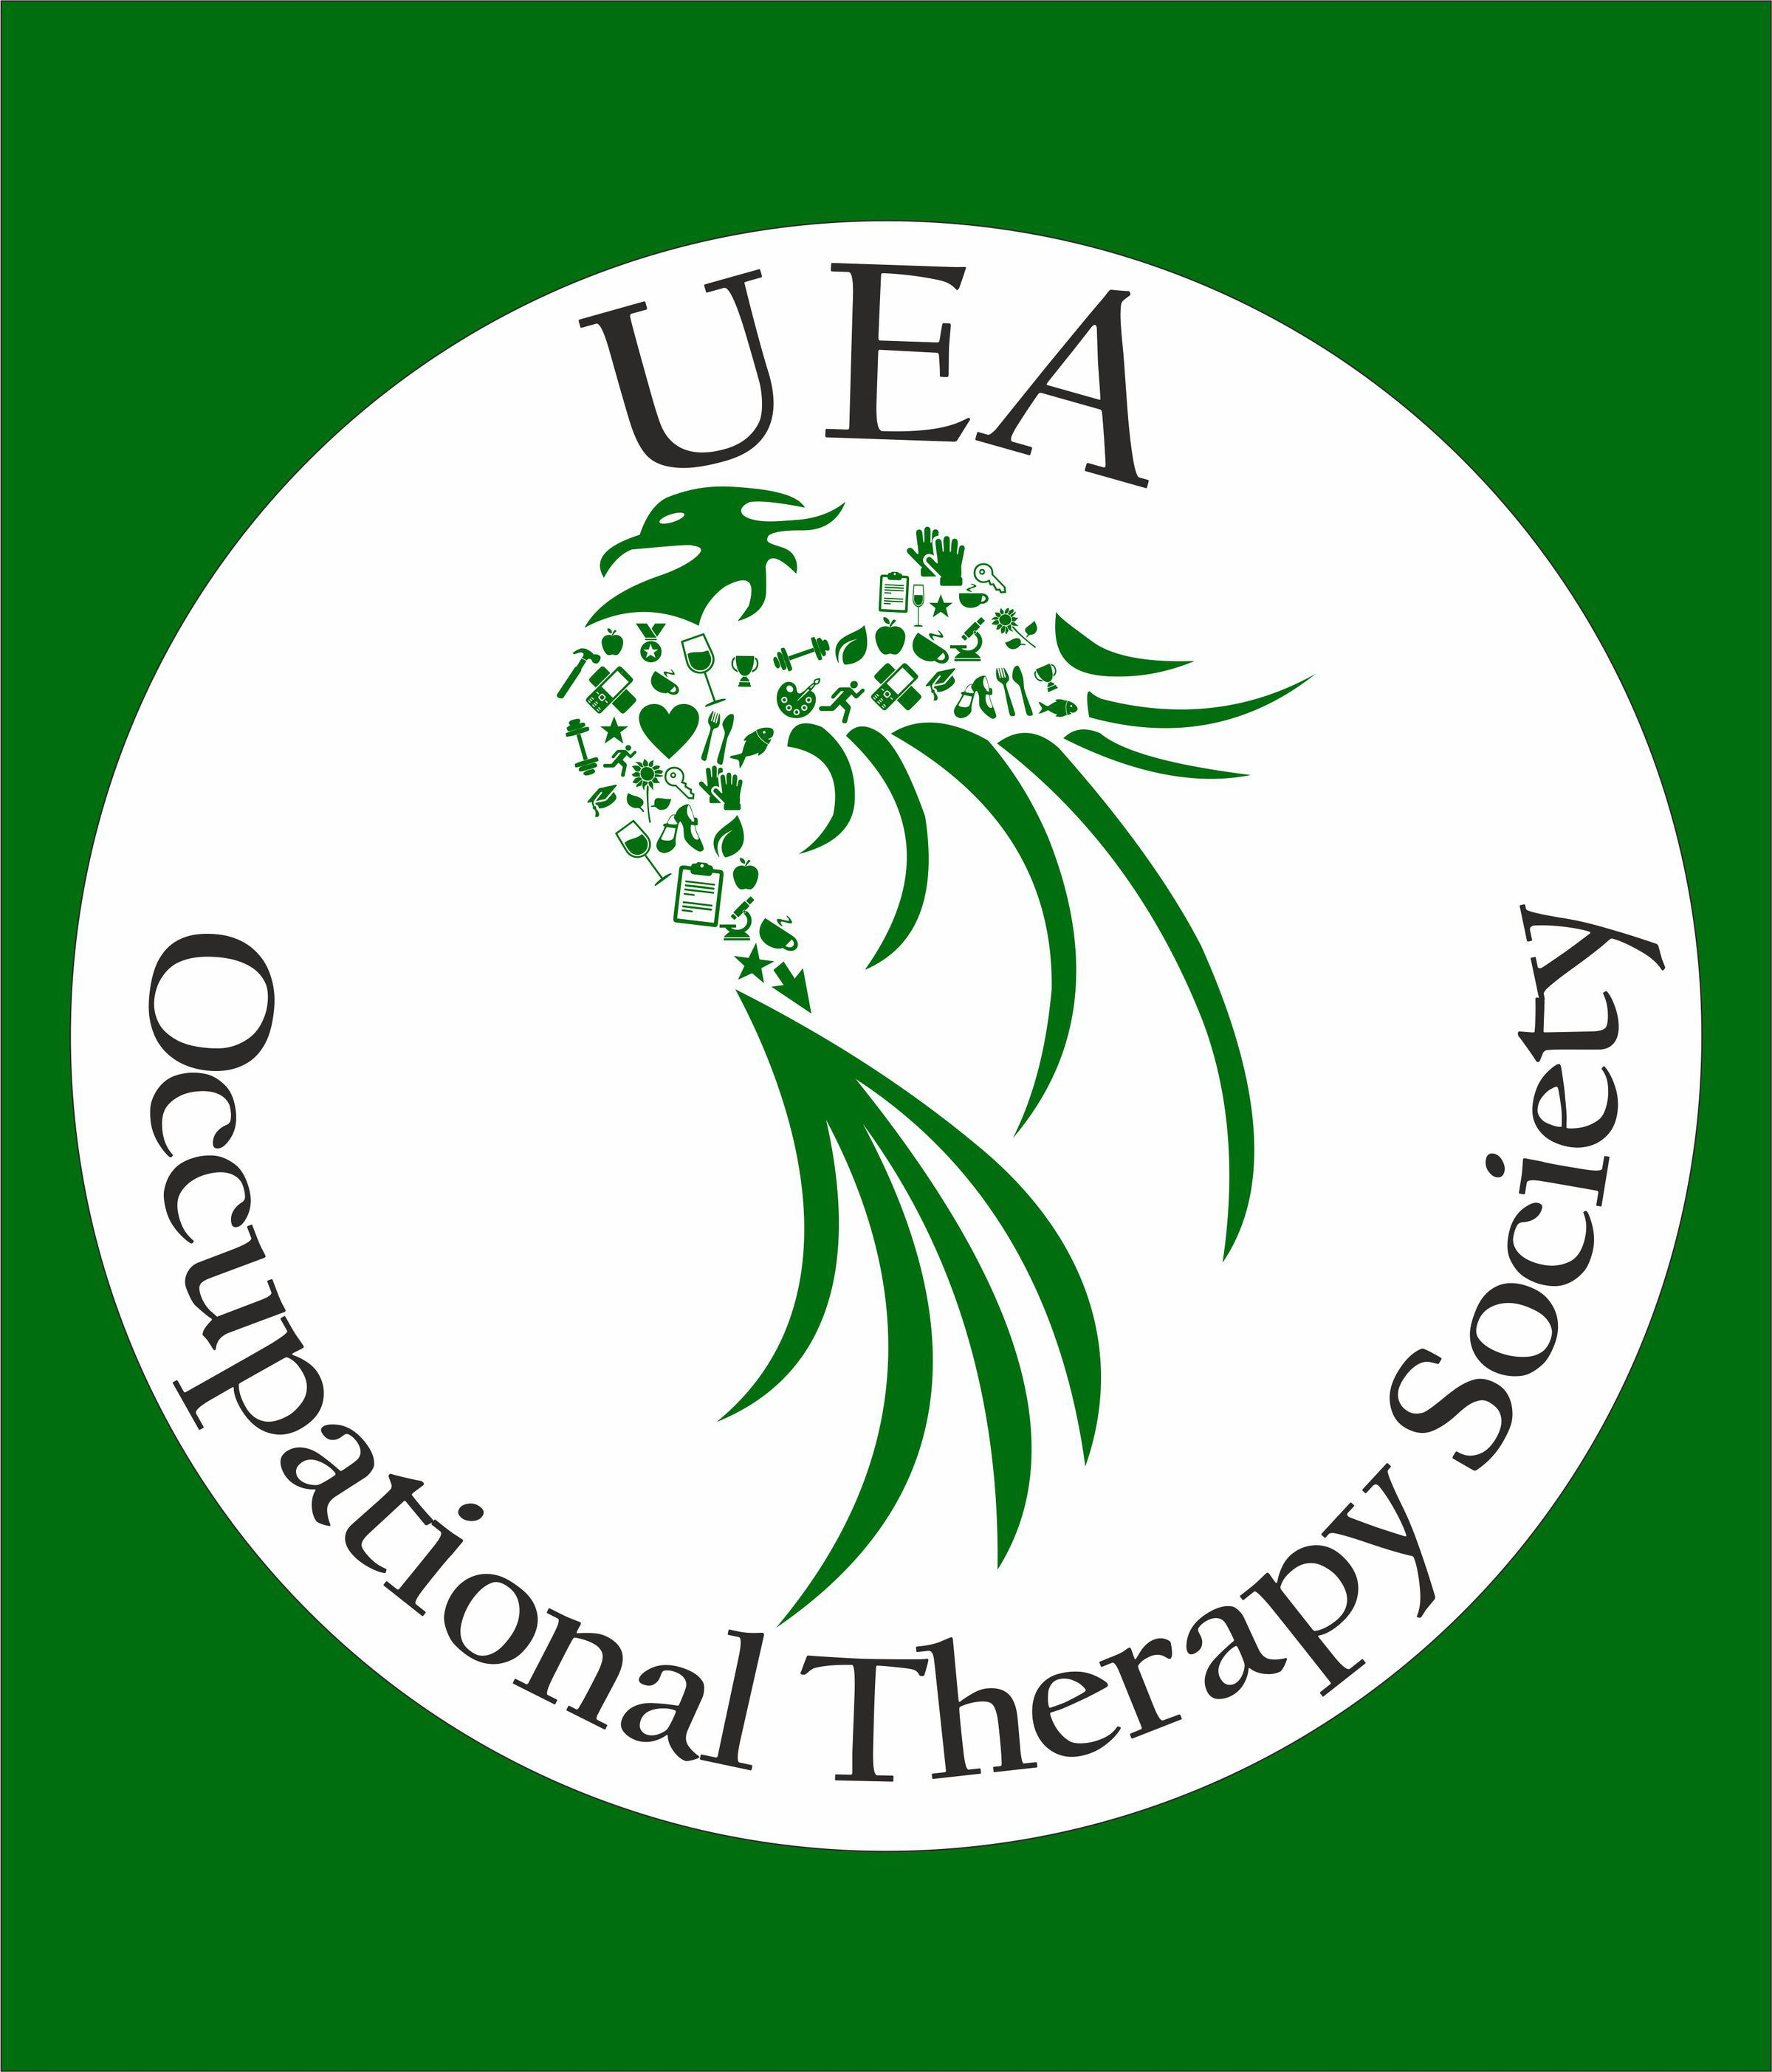 Occupational Therapy Society